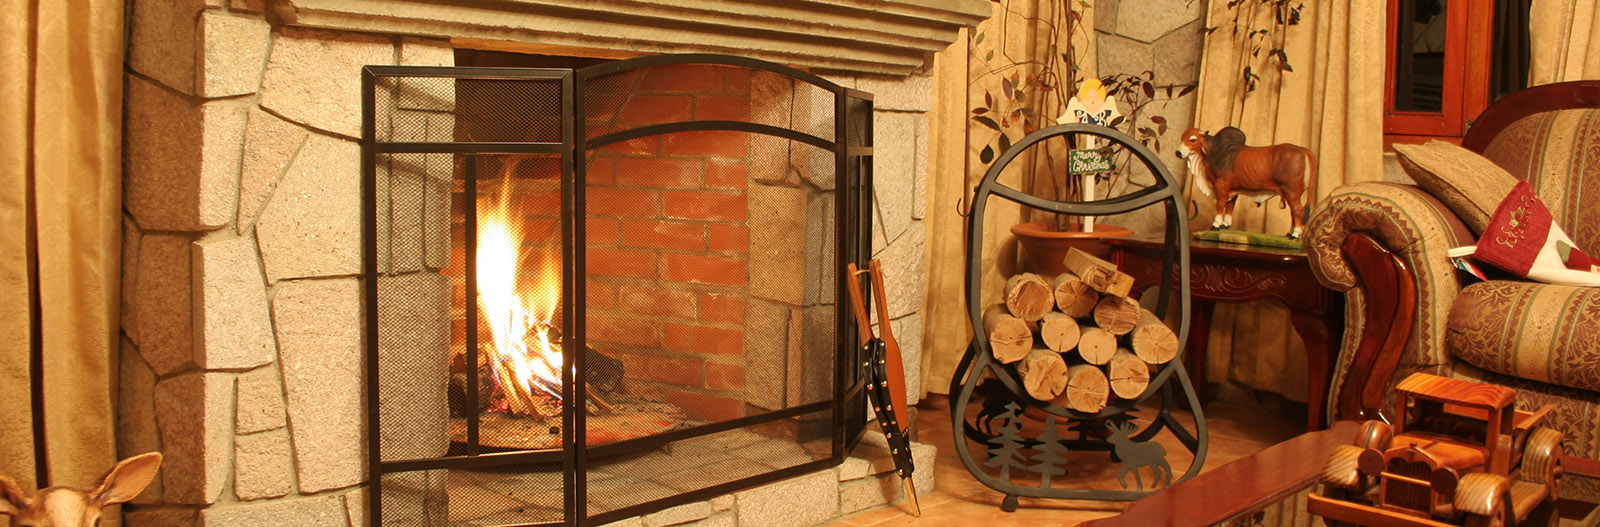 Best Chimney Services Chimney Sweep Services Fireplace